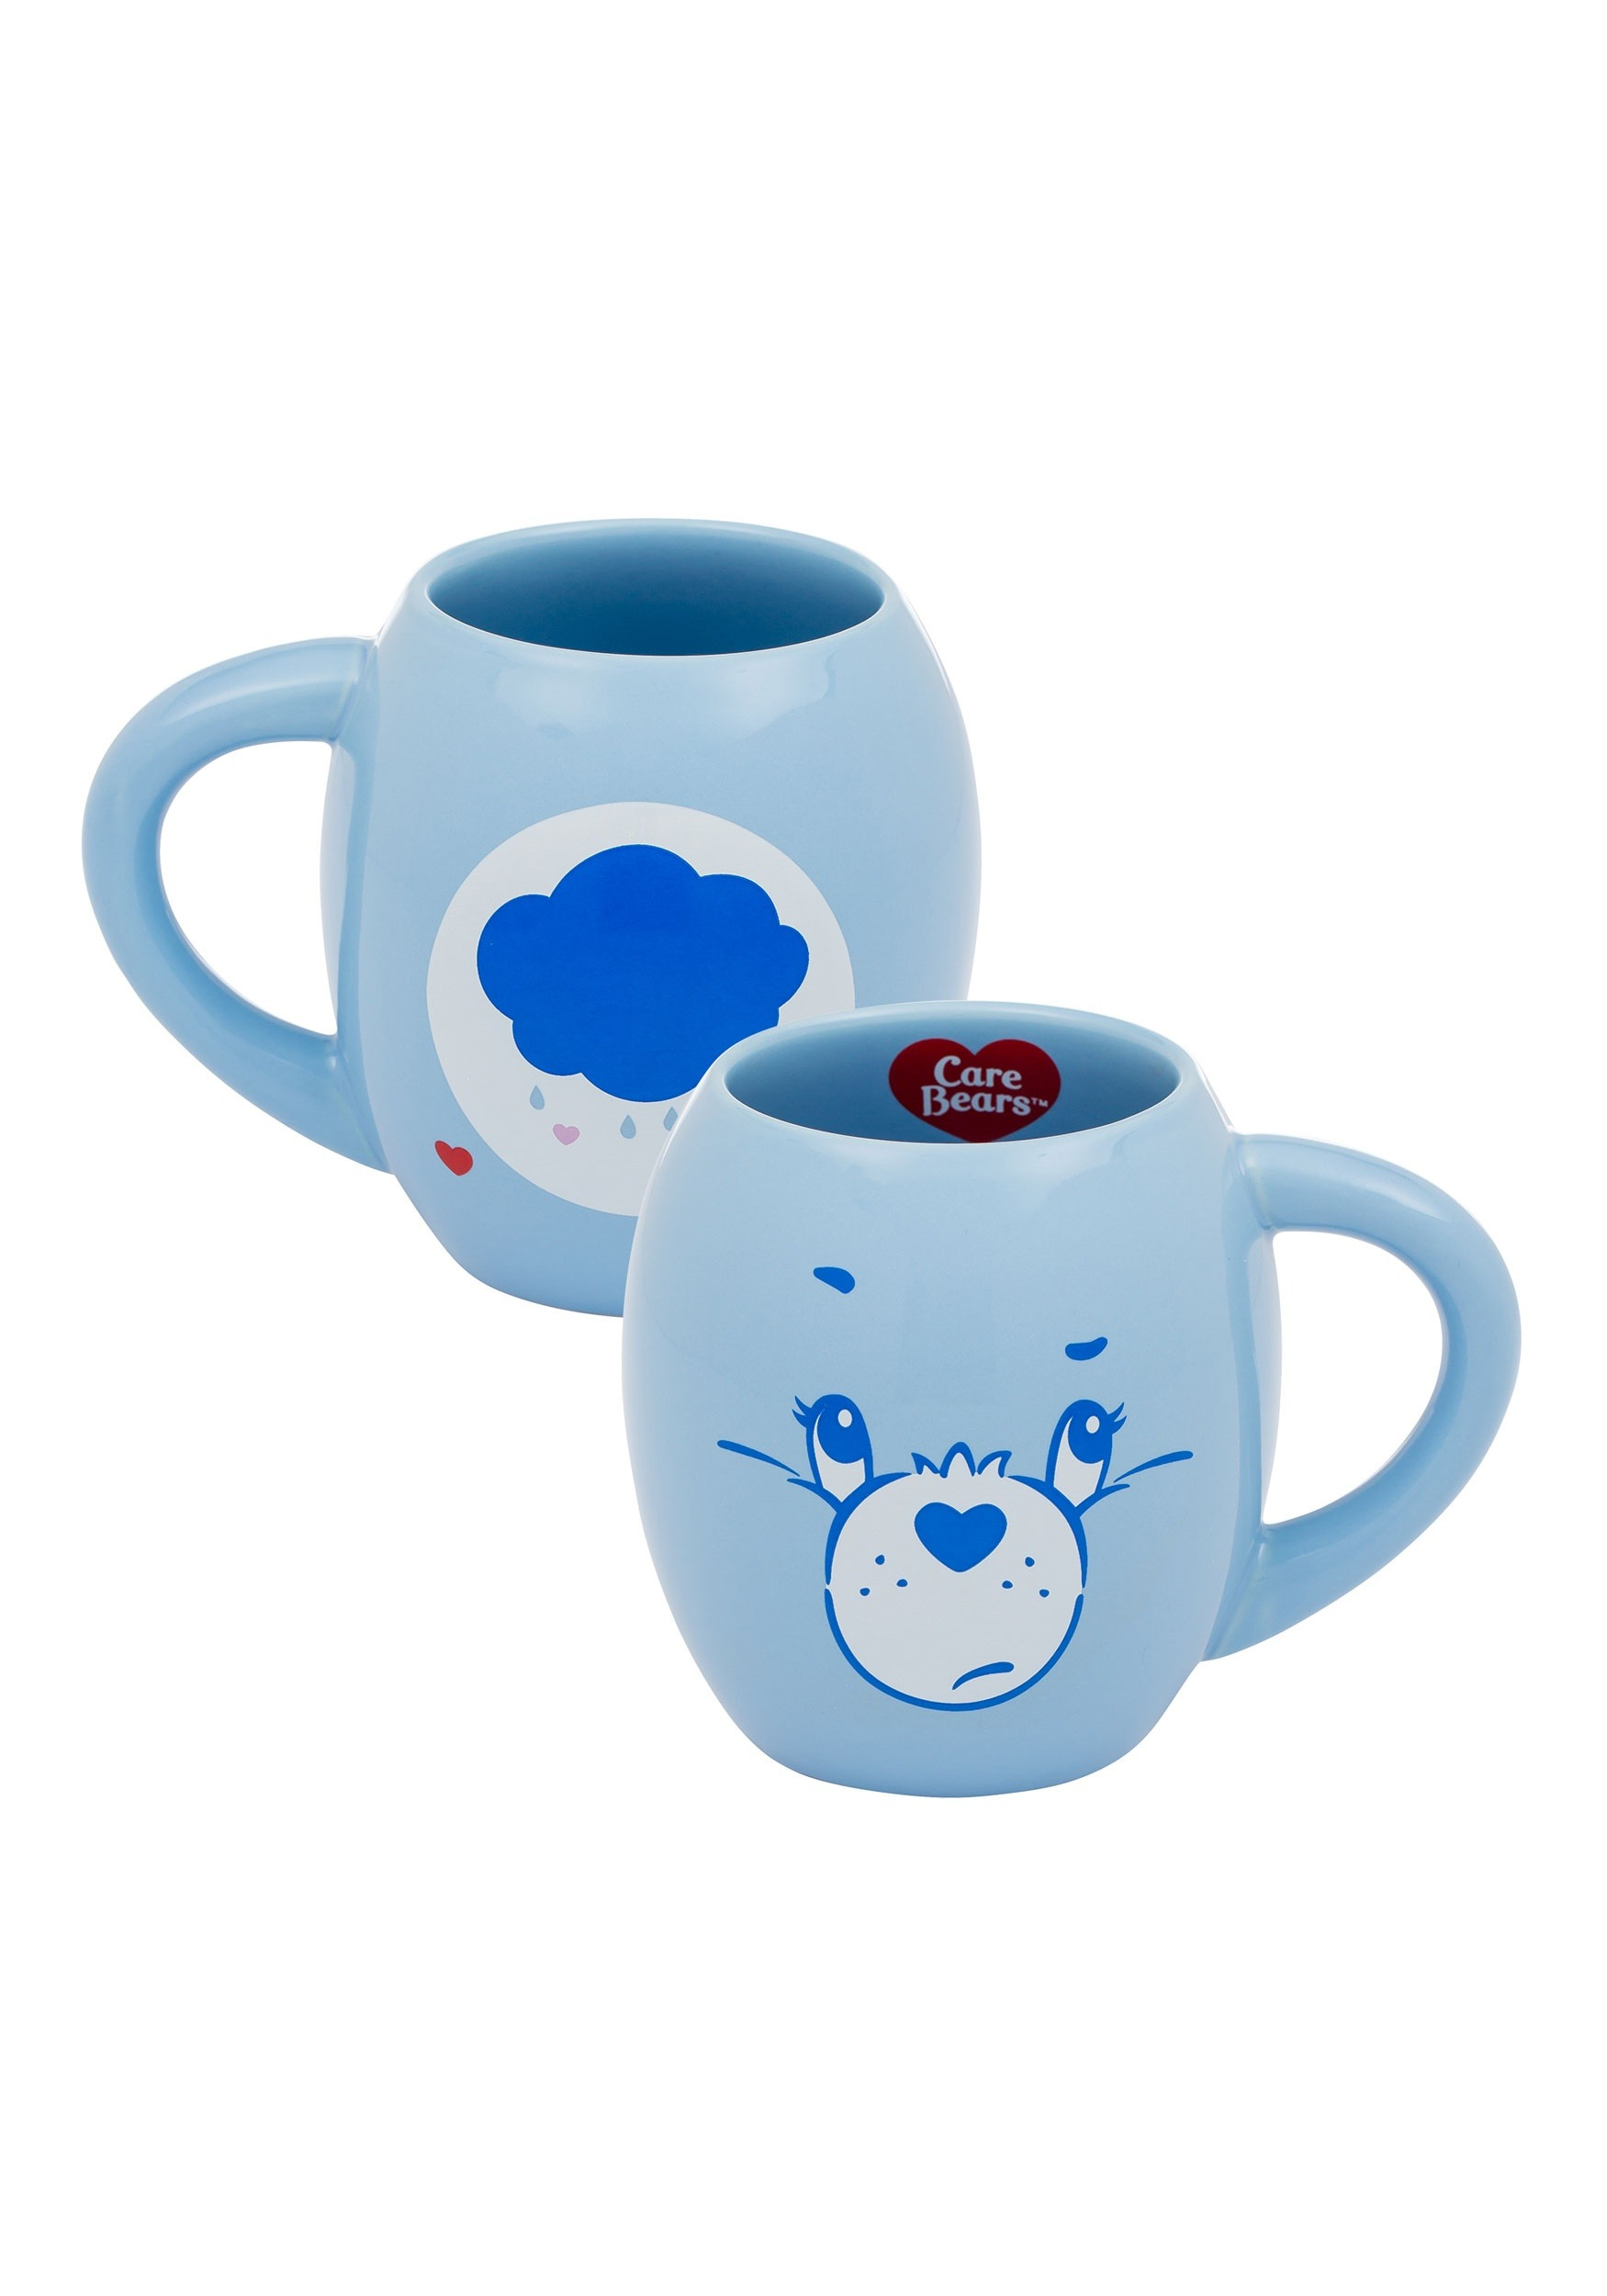 Care Bears Grumpy Bear 18 oz Oval Ceramic Mug VA29062